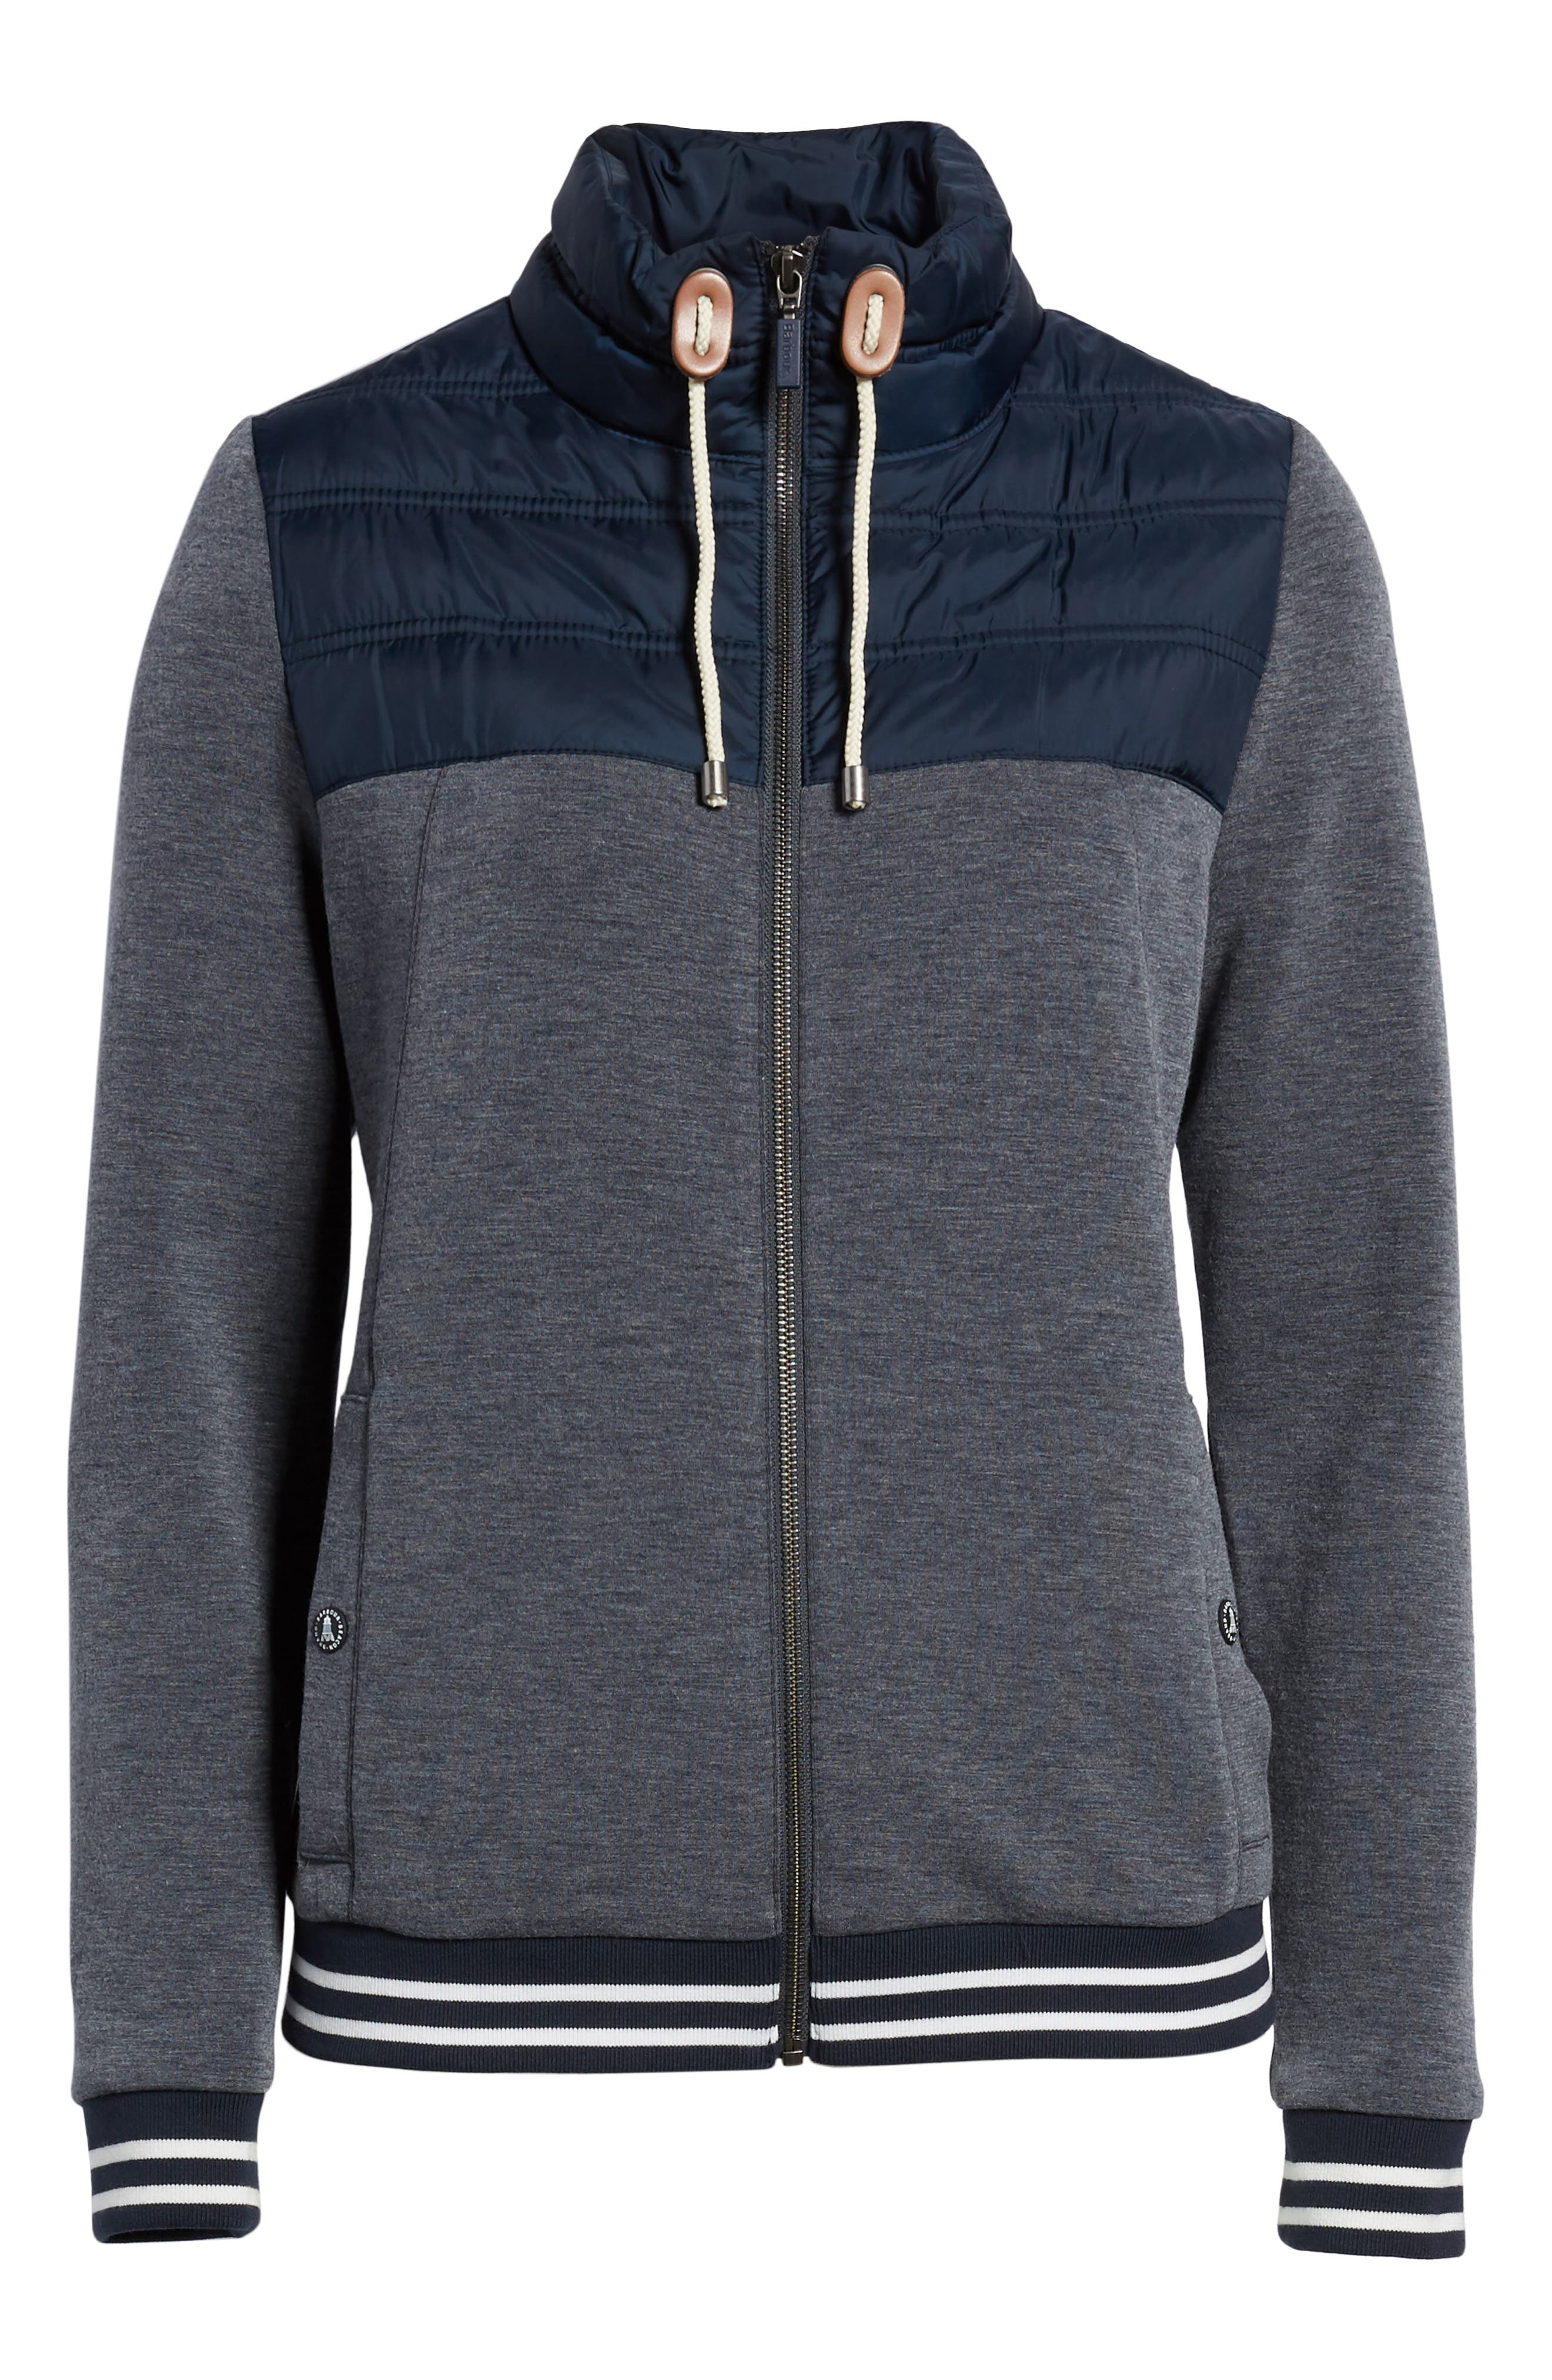 Selsey Zip Sweater,                             Alternate thumbnail 6, color,                             Navy Marl